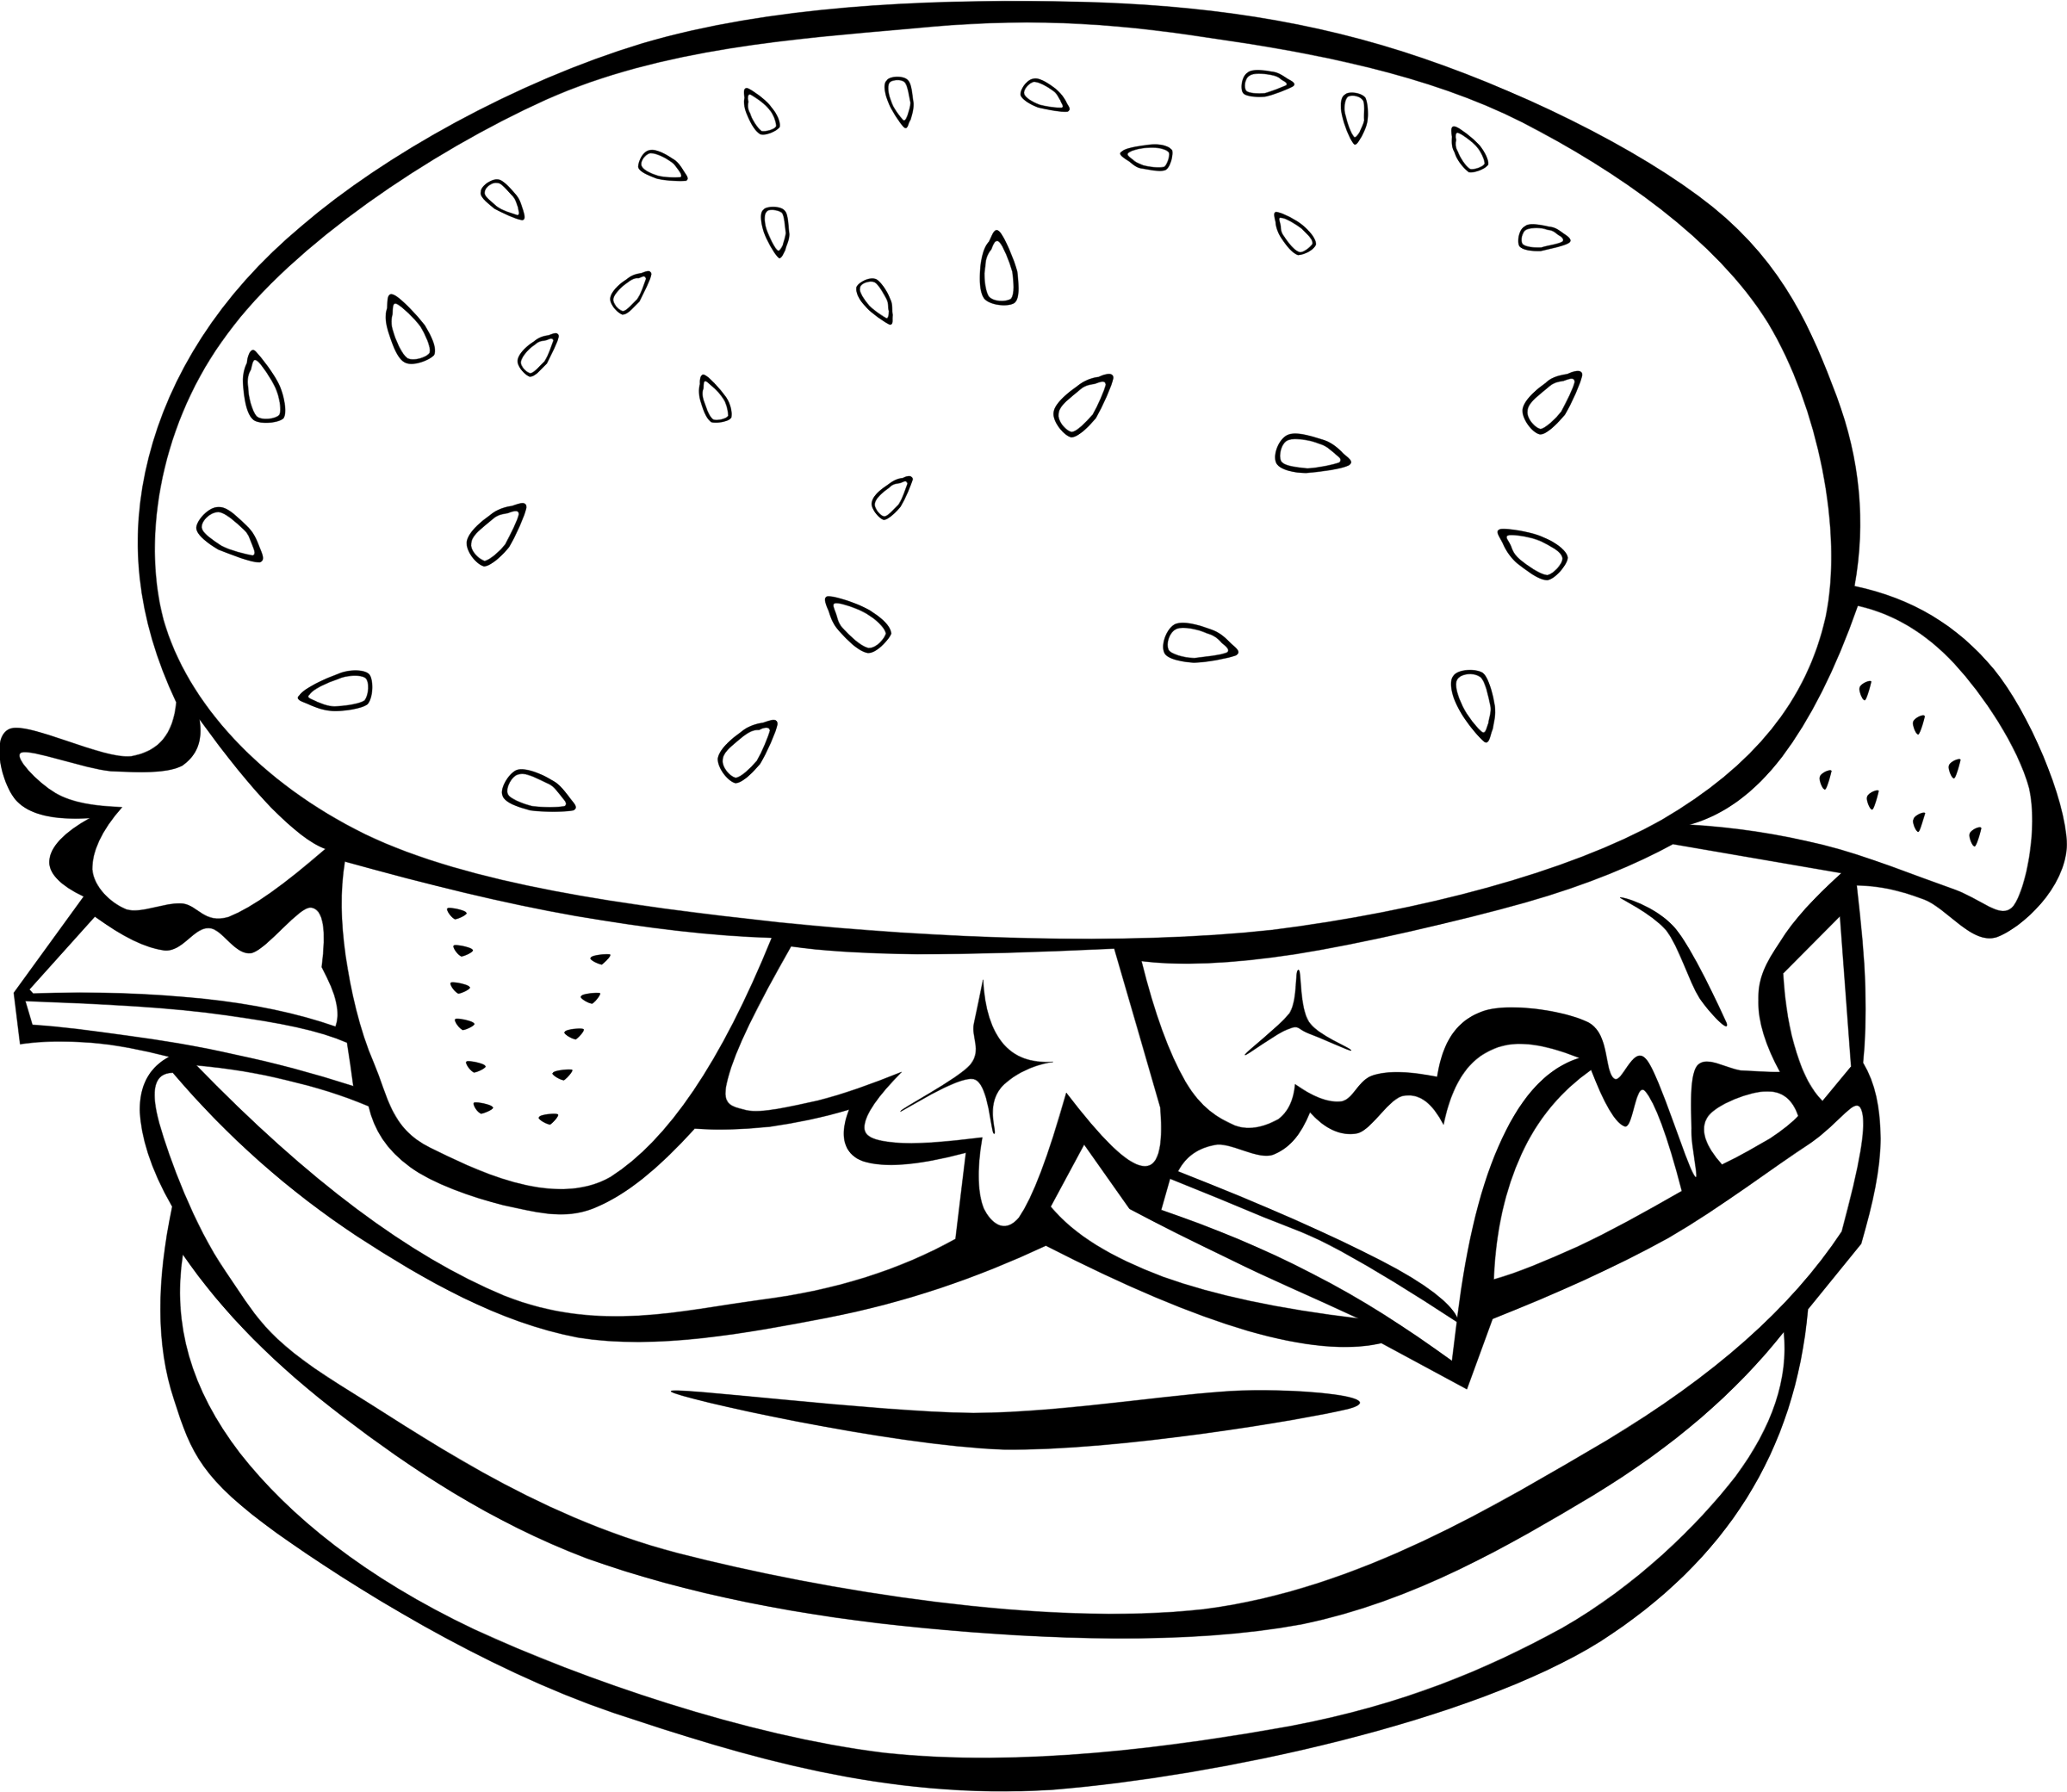 Drawing transparent food. Black and white